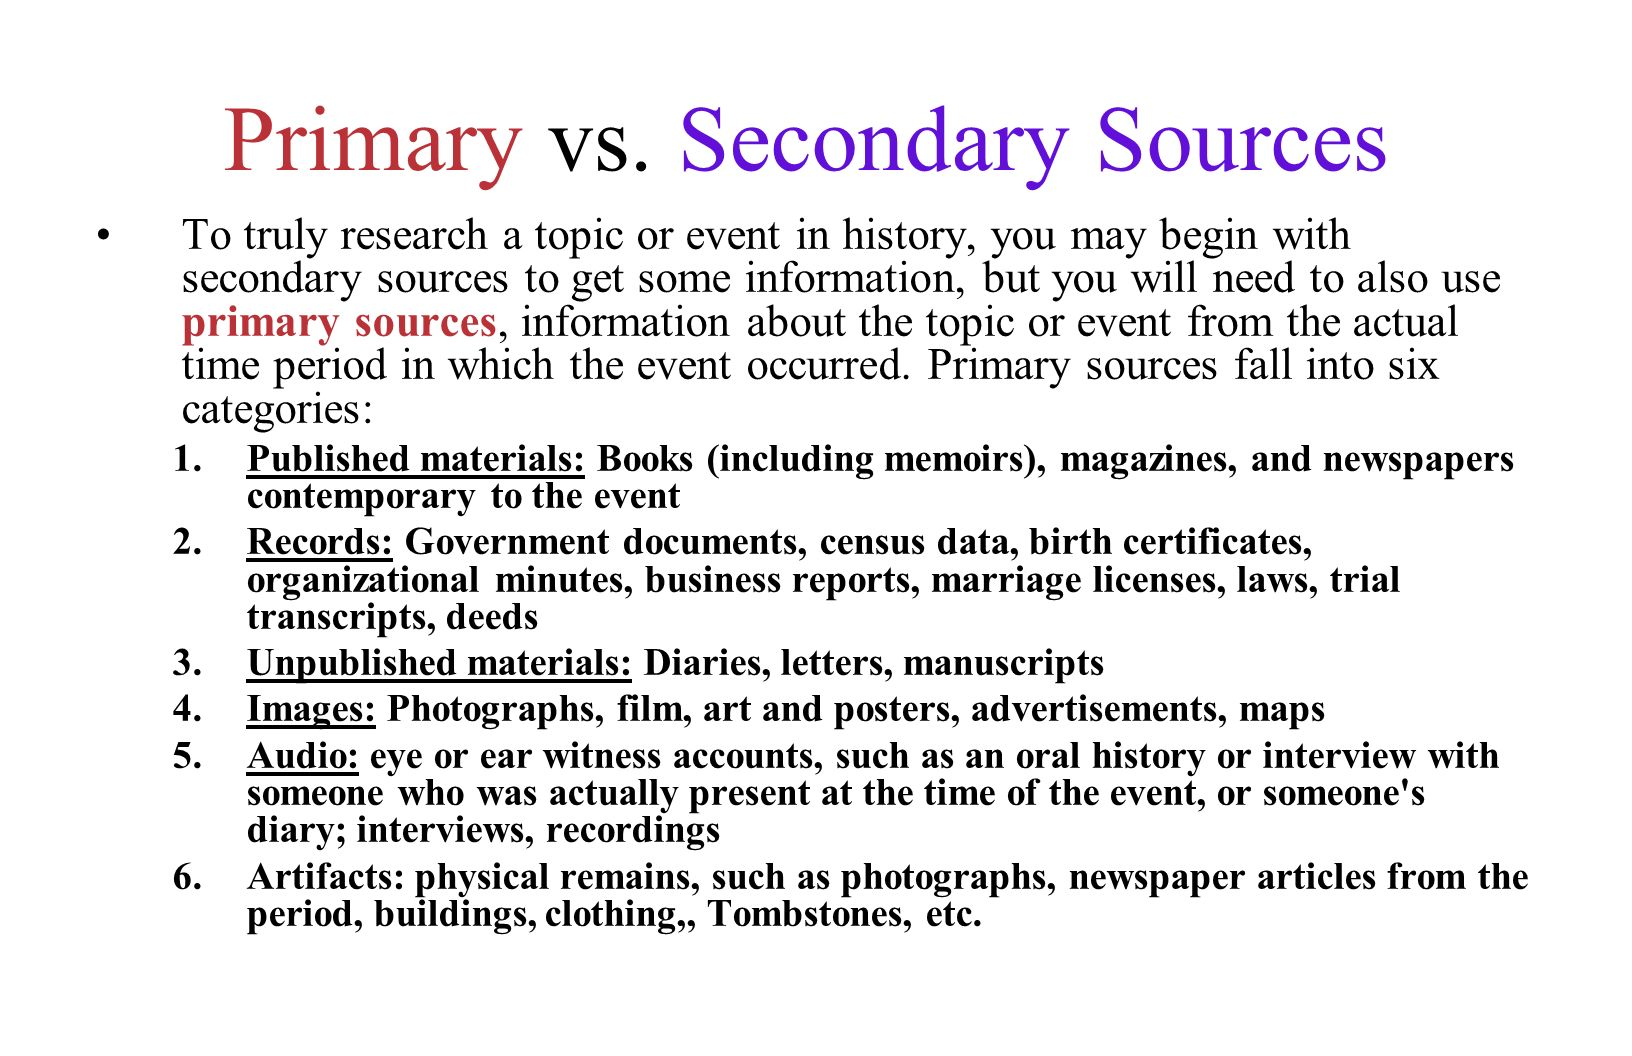 primary source essay Academic sources for essays this page contains important information about the types of academic sources you should use for your projects if you have a source that is not included in this description, you can still use it in your paper, but it will not fulfill the academic source requirement.